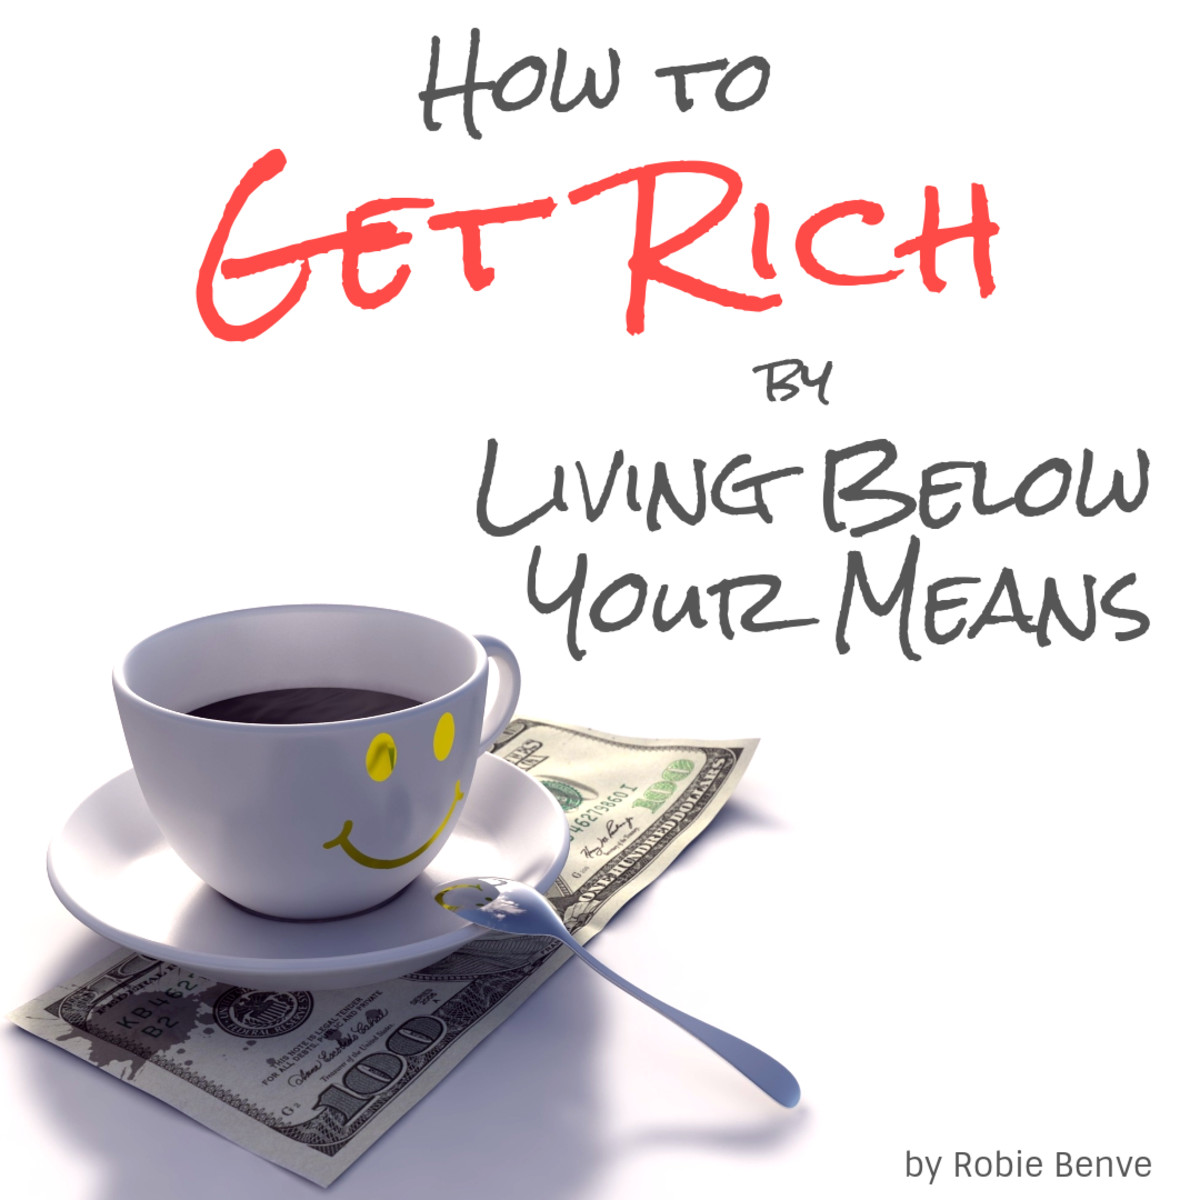 Learn simple strategies that can help you get rich by learning to live within your means and taking control of where your money goes. Financial tips with a positive approach that will change the way you think about money.